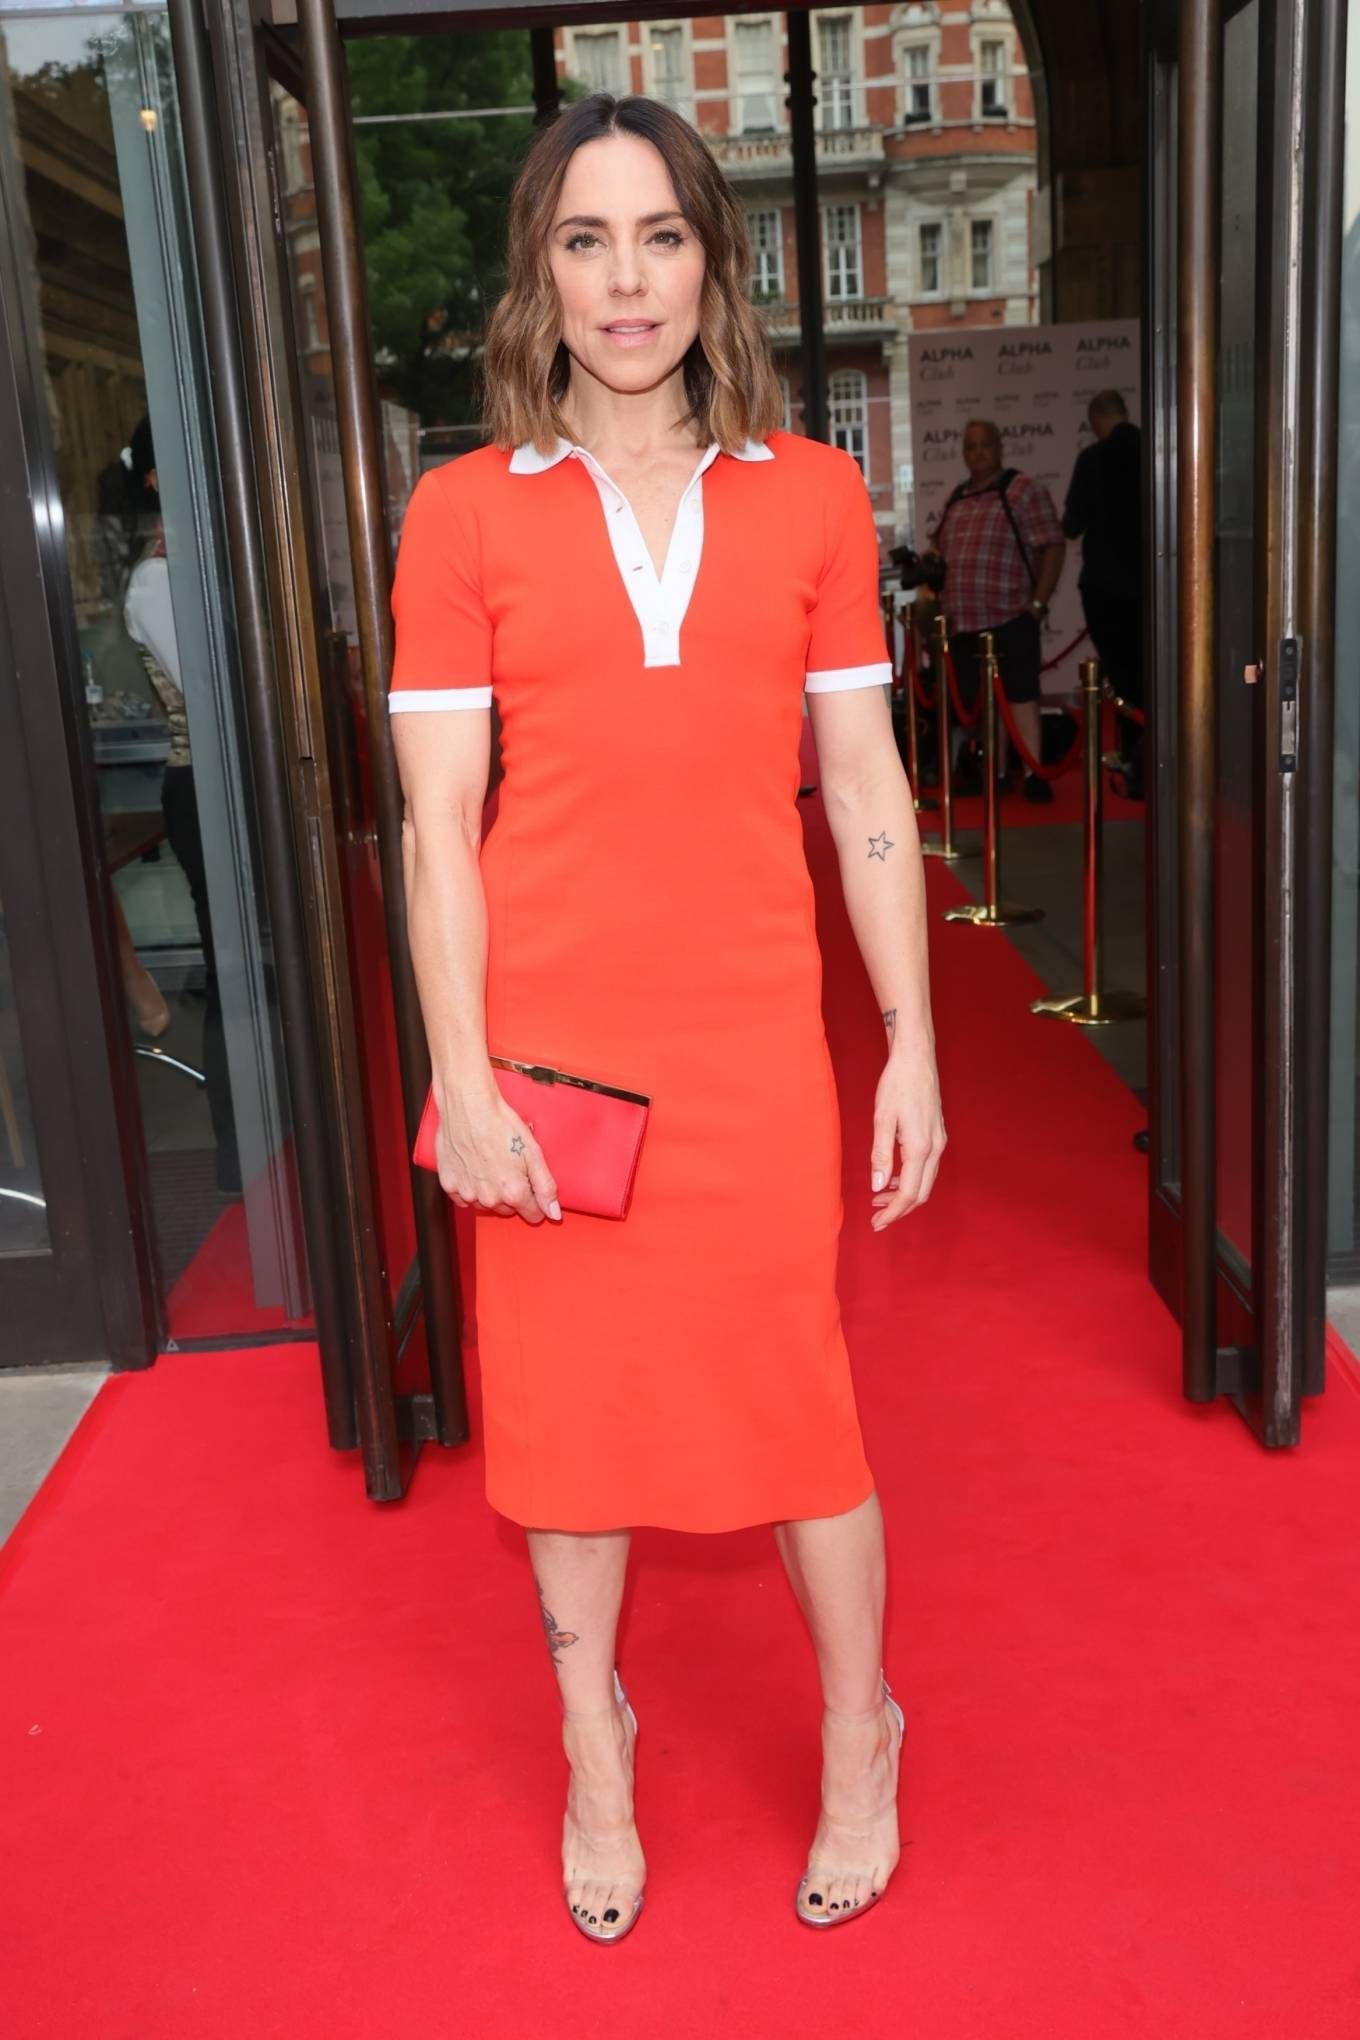 Melanie Chisholm - In a tight orange dress at Best of West End in London